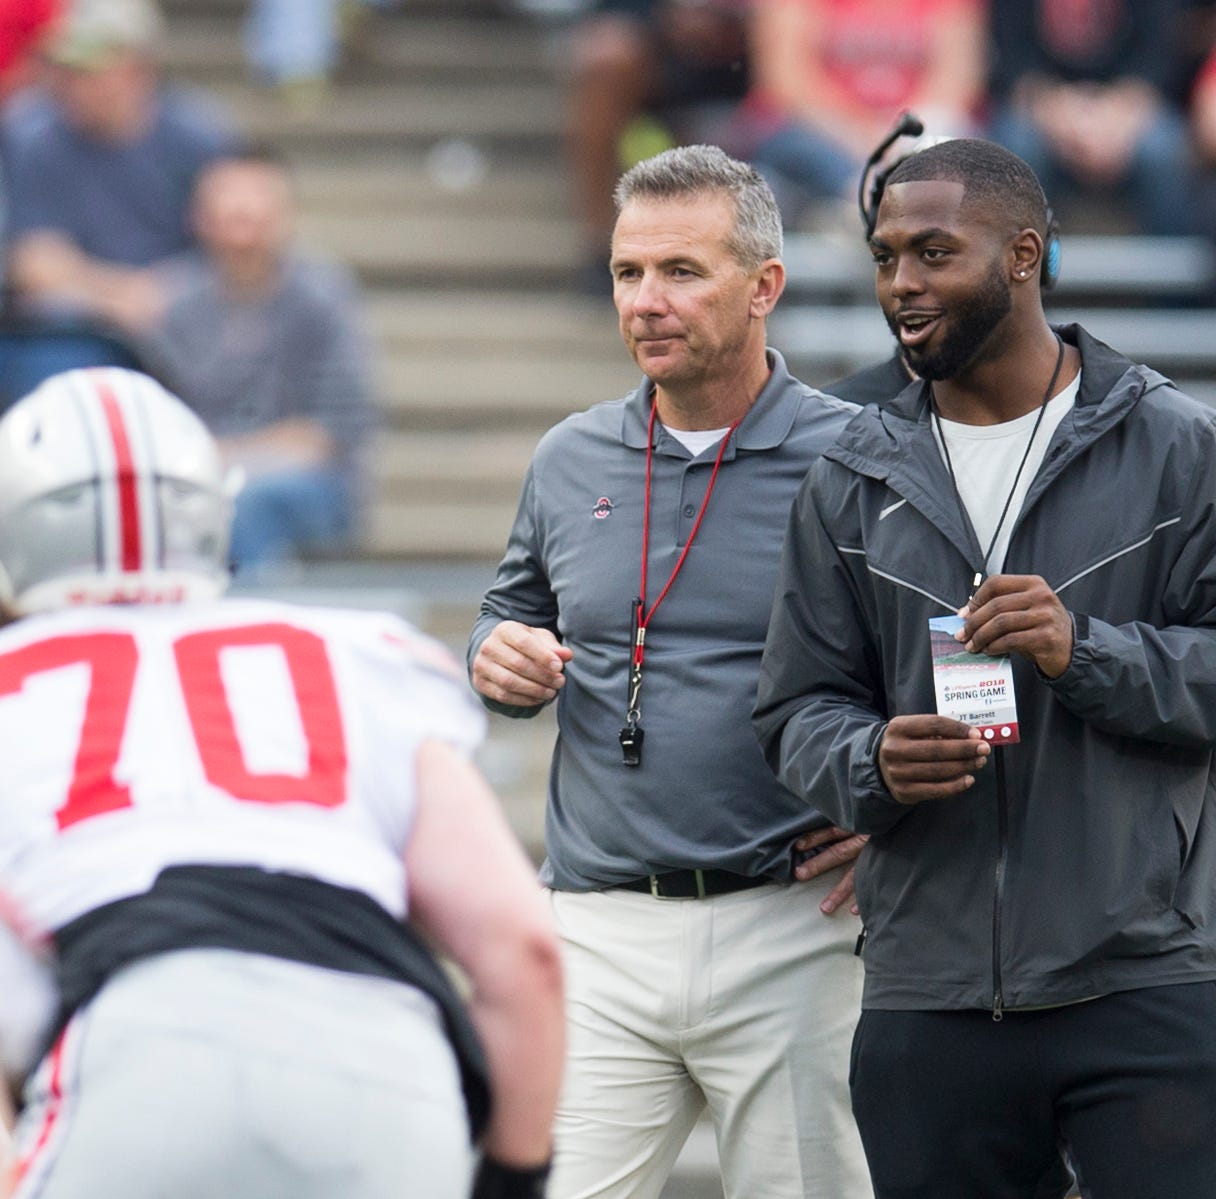 Ohio State football: Urban Meyer's ready for the saga to be over ... are you?